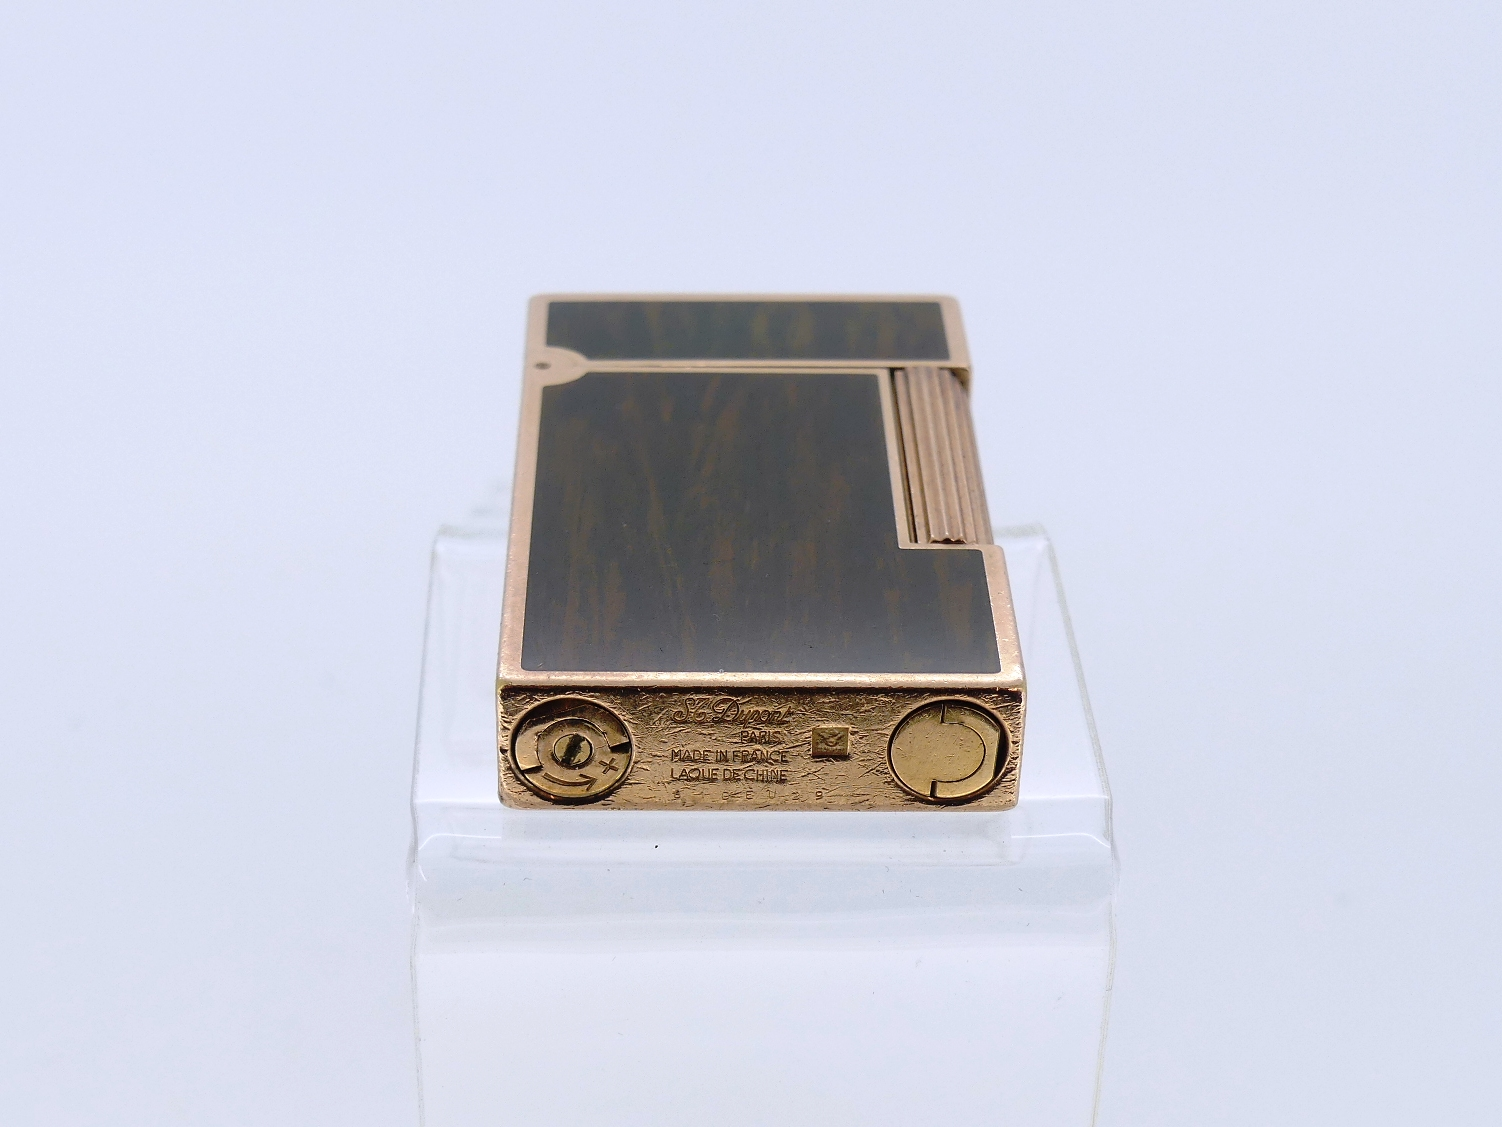 S. T. Dupont, Paris, 'Laque De Chine' gold plated and green/gold lacquer inlay lighter. - Image 3 of 3